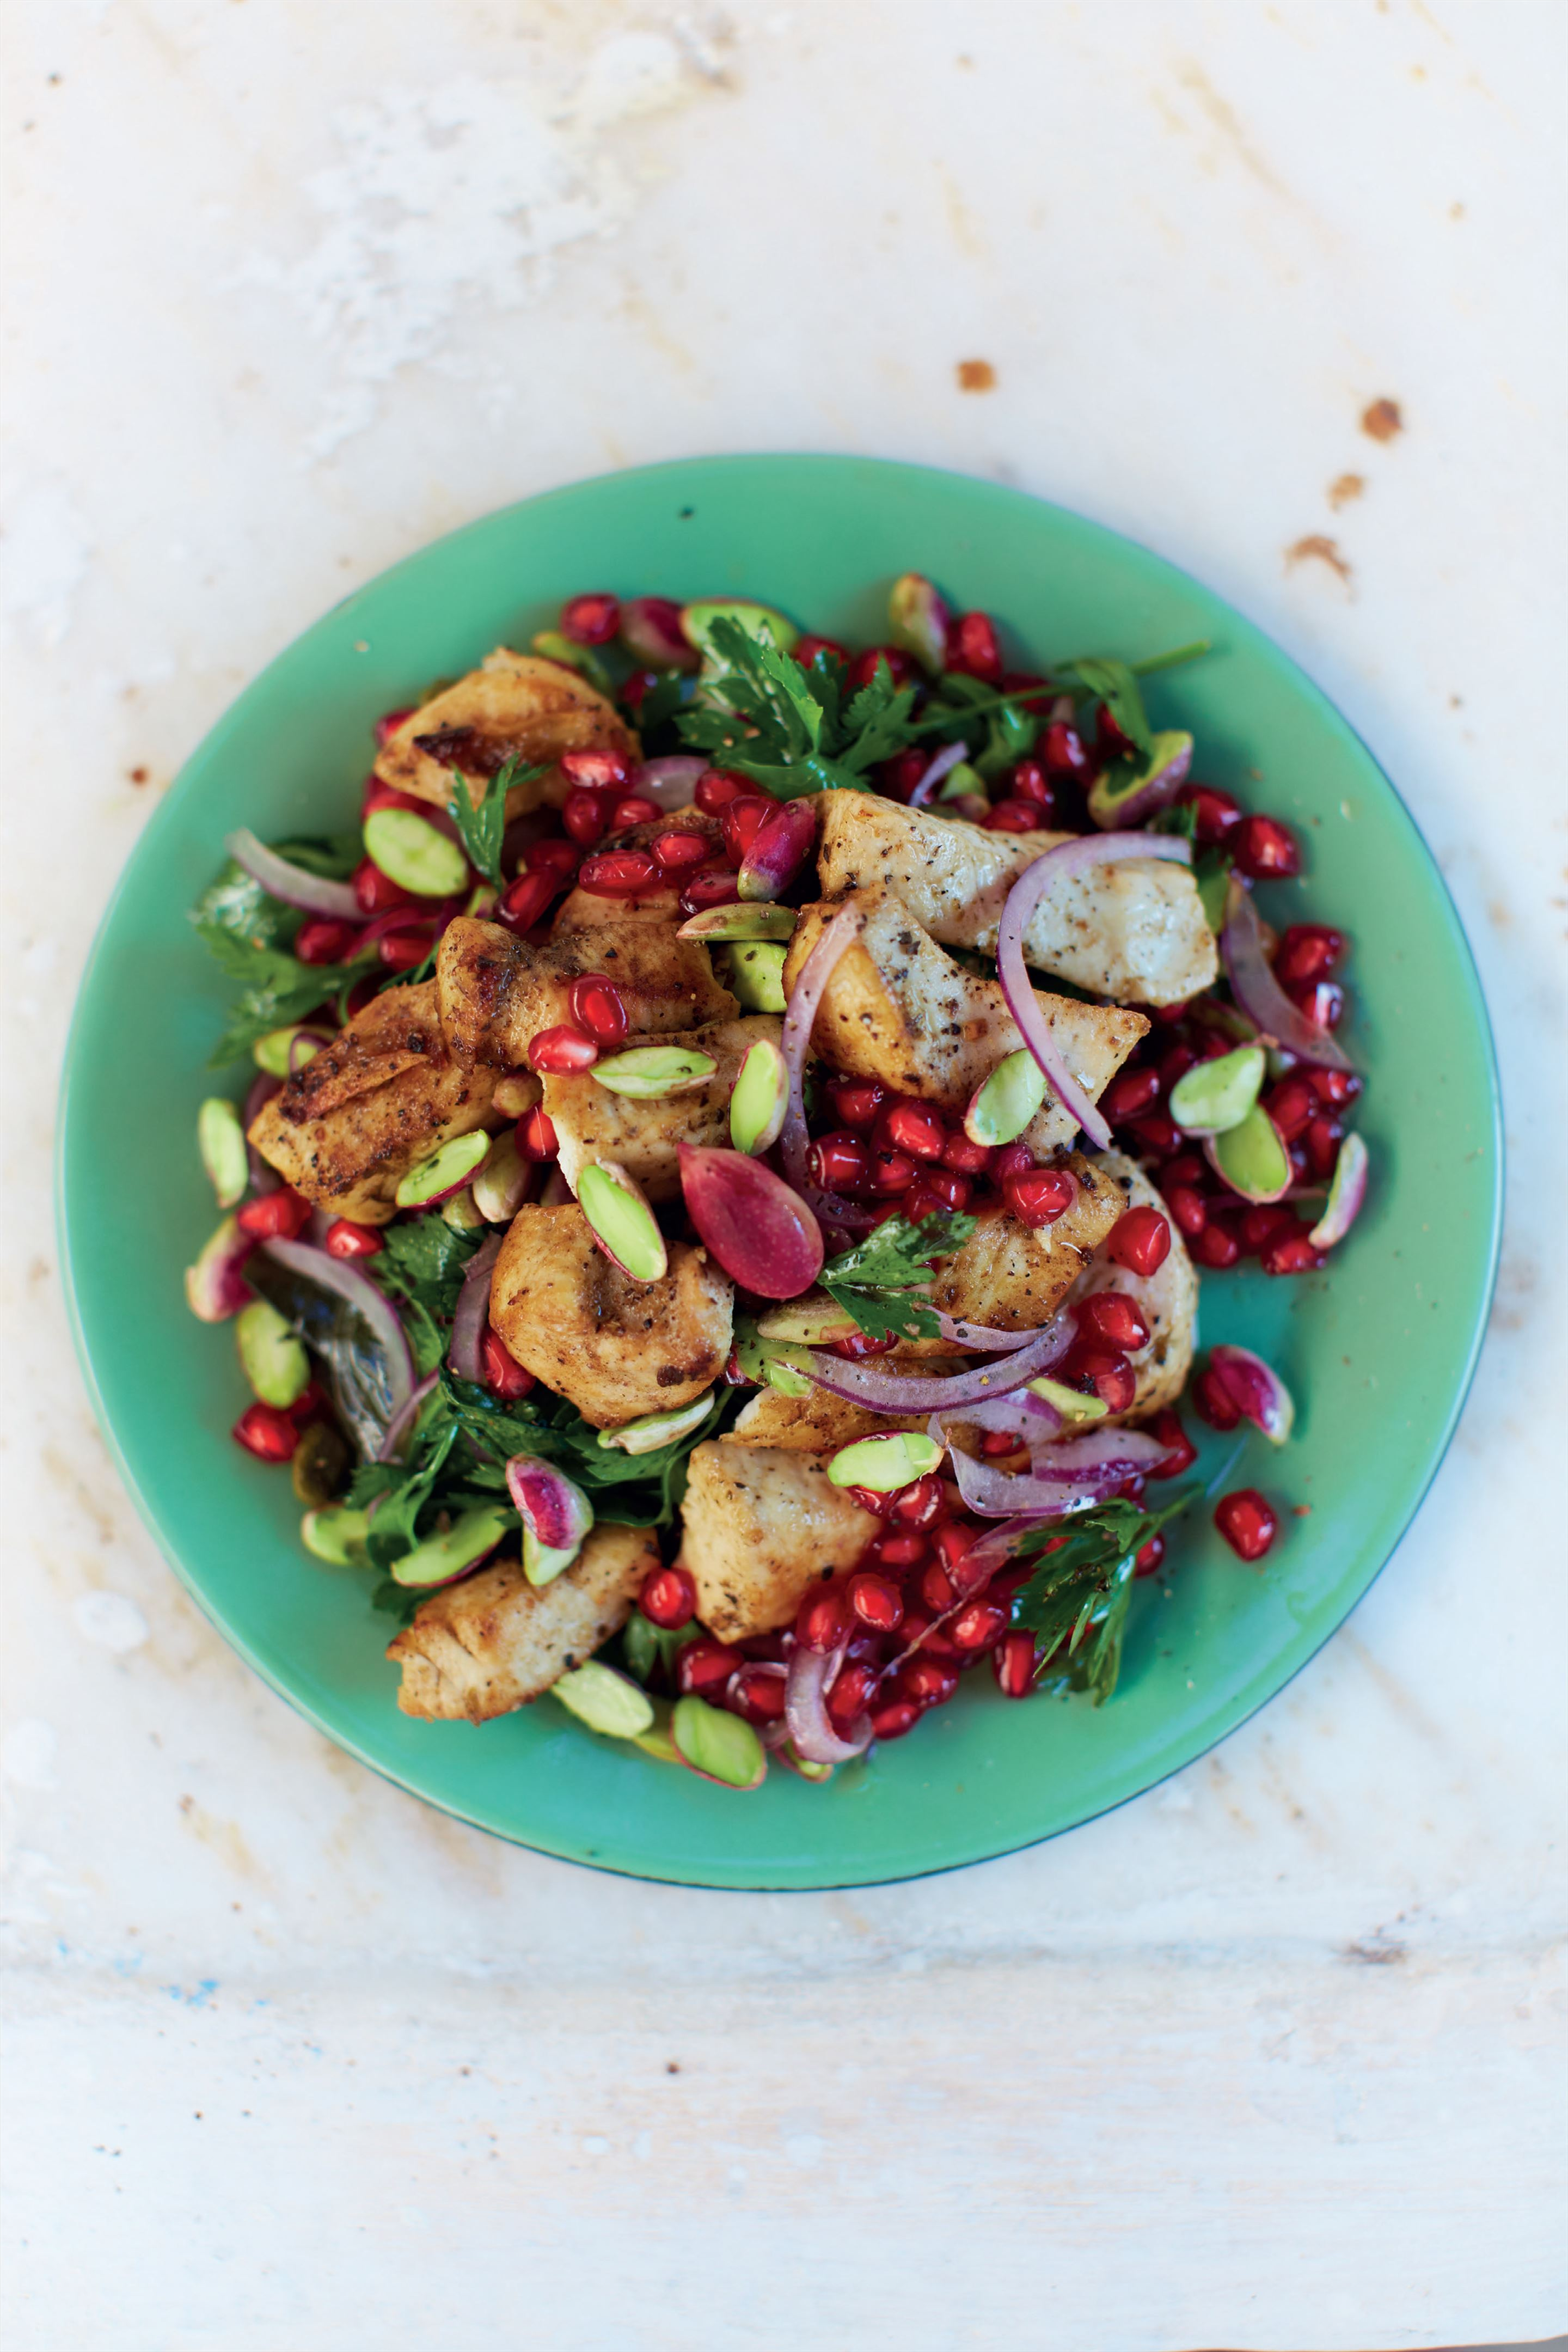 Swordfish with pomegranate, onion and pistachio salad